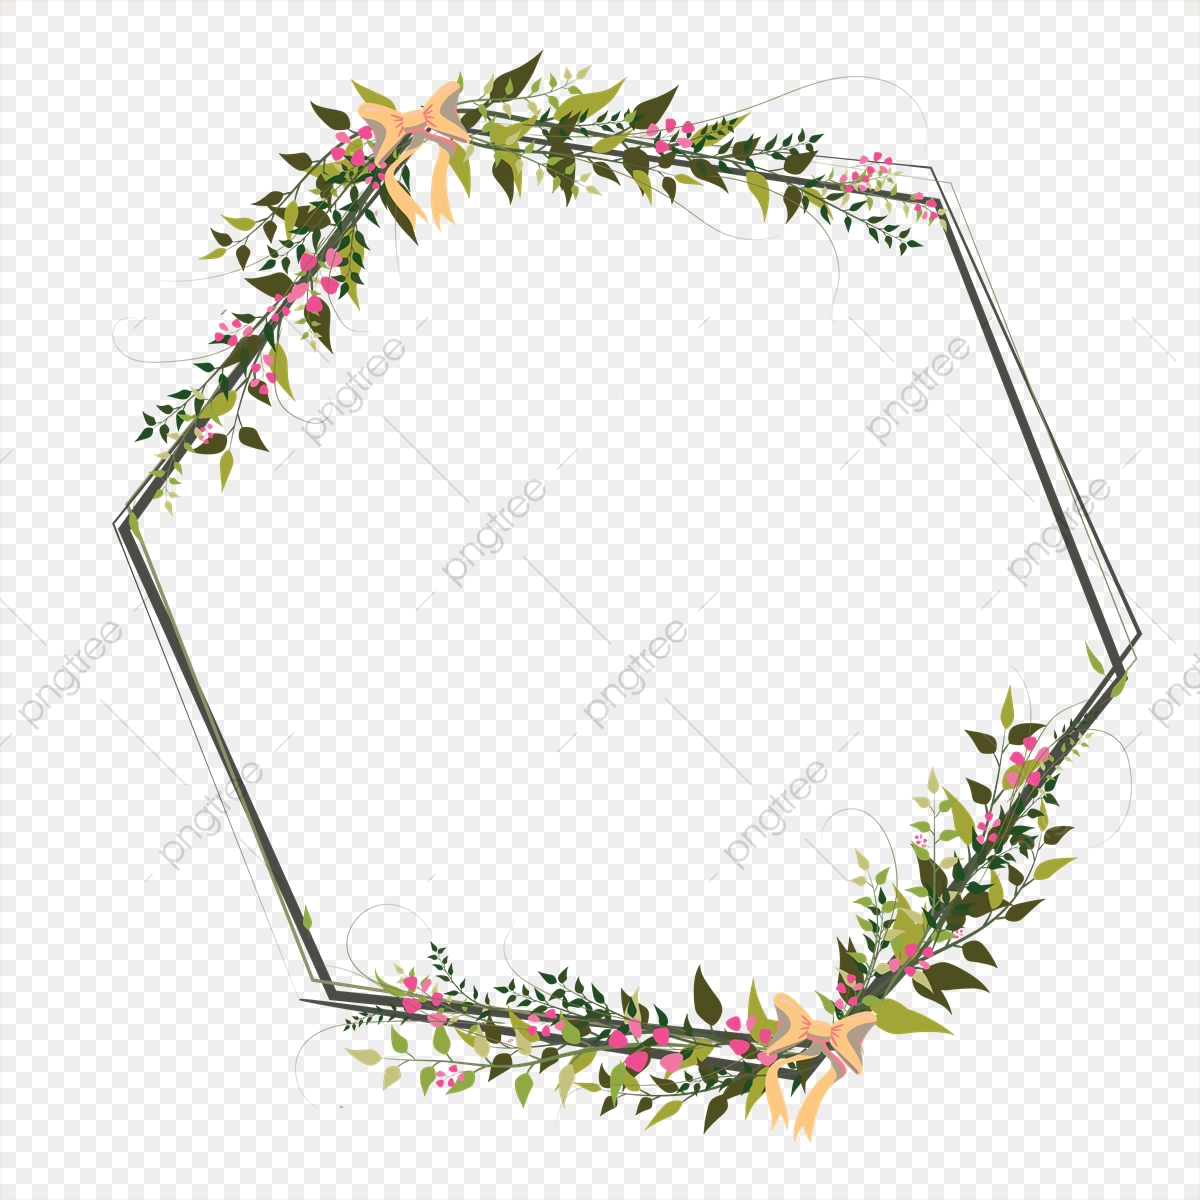 Floral Border Png Images Vector And Psd Files Free Download On